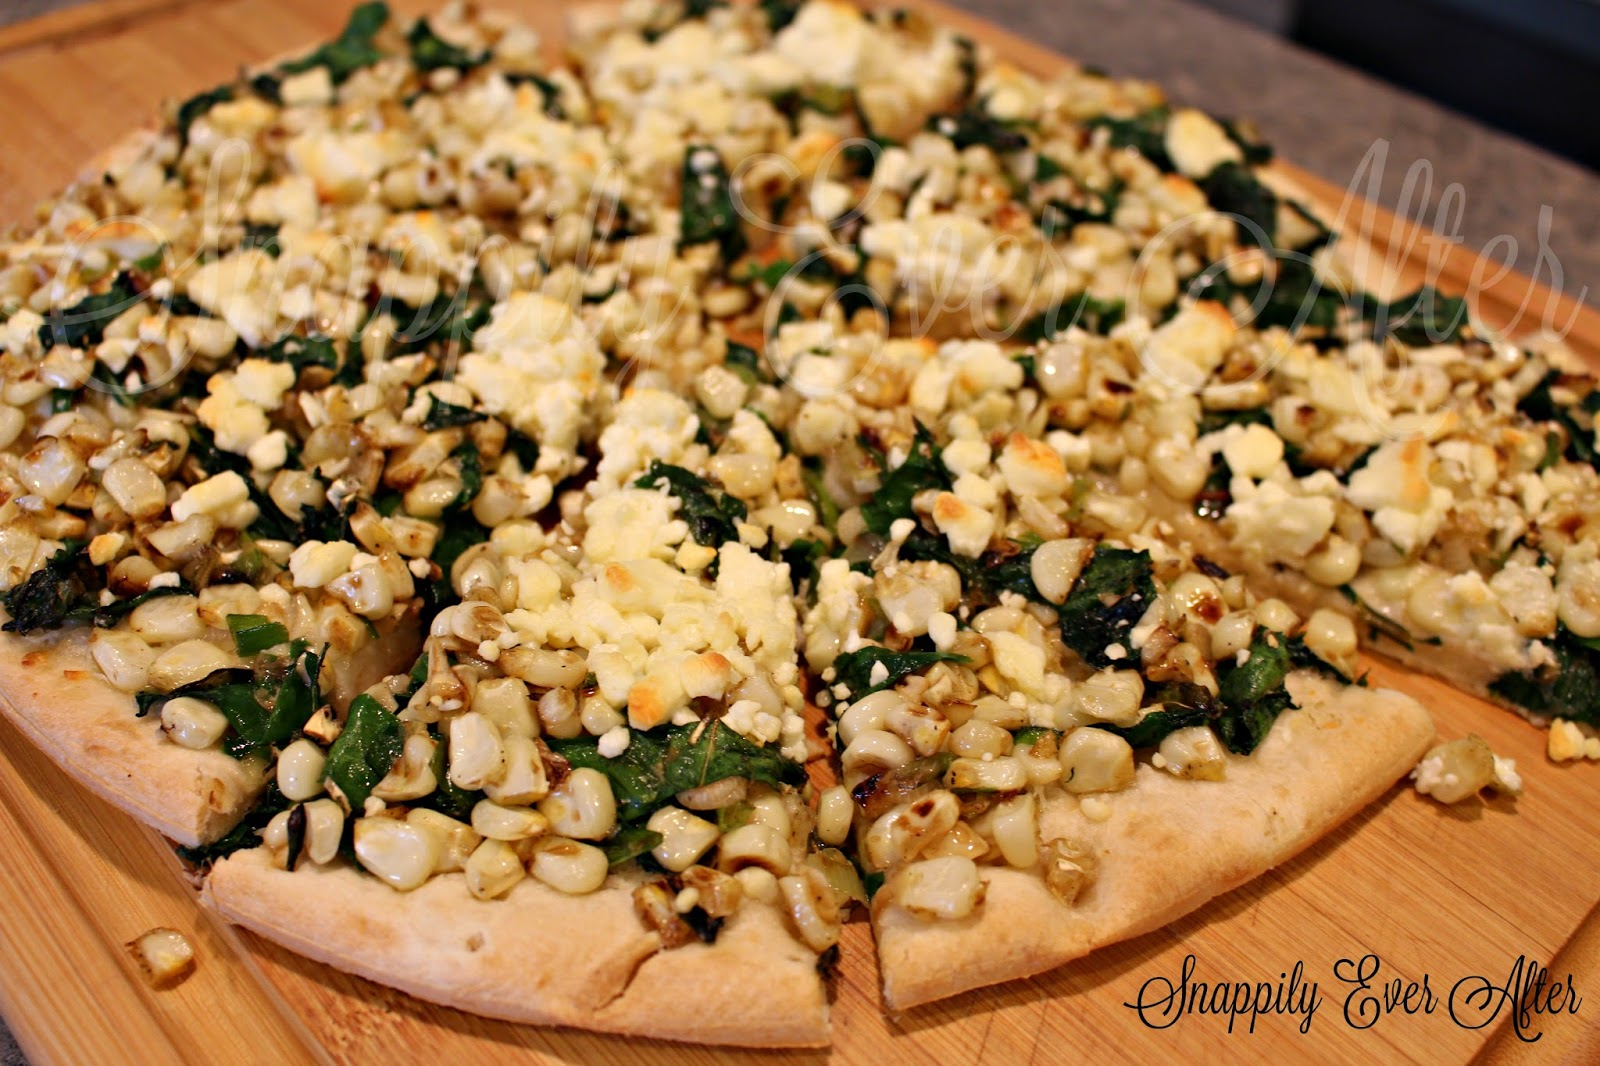 Snappily Ever After: Corn, Chard and Green Onion Flat Bread